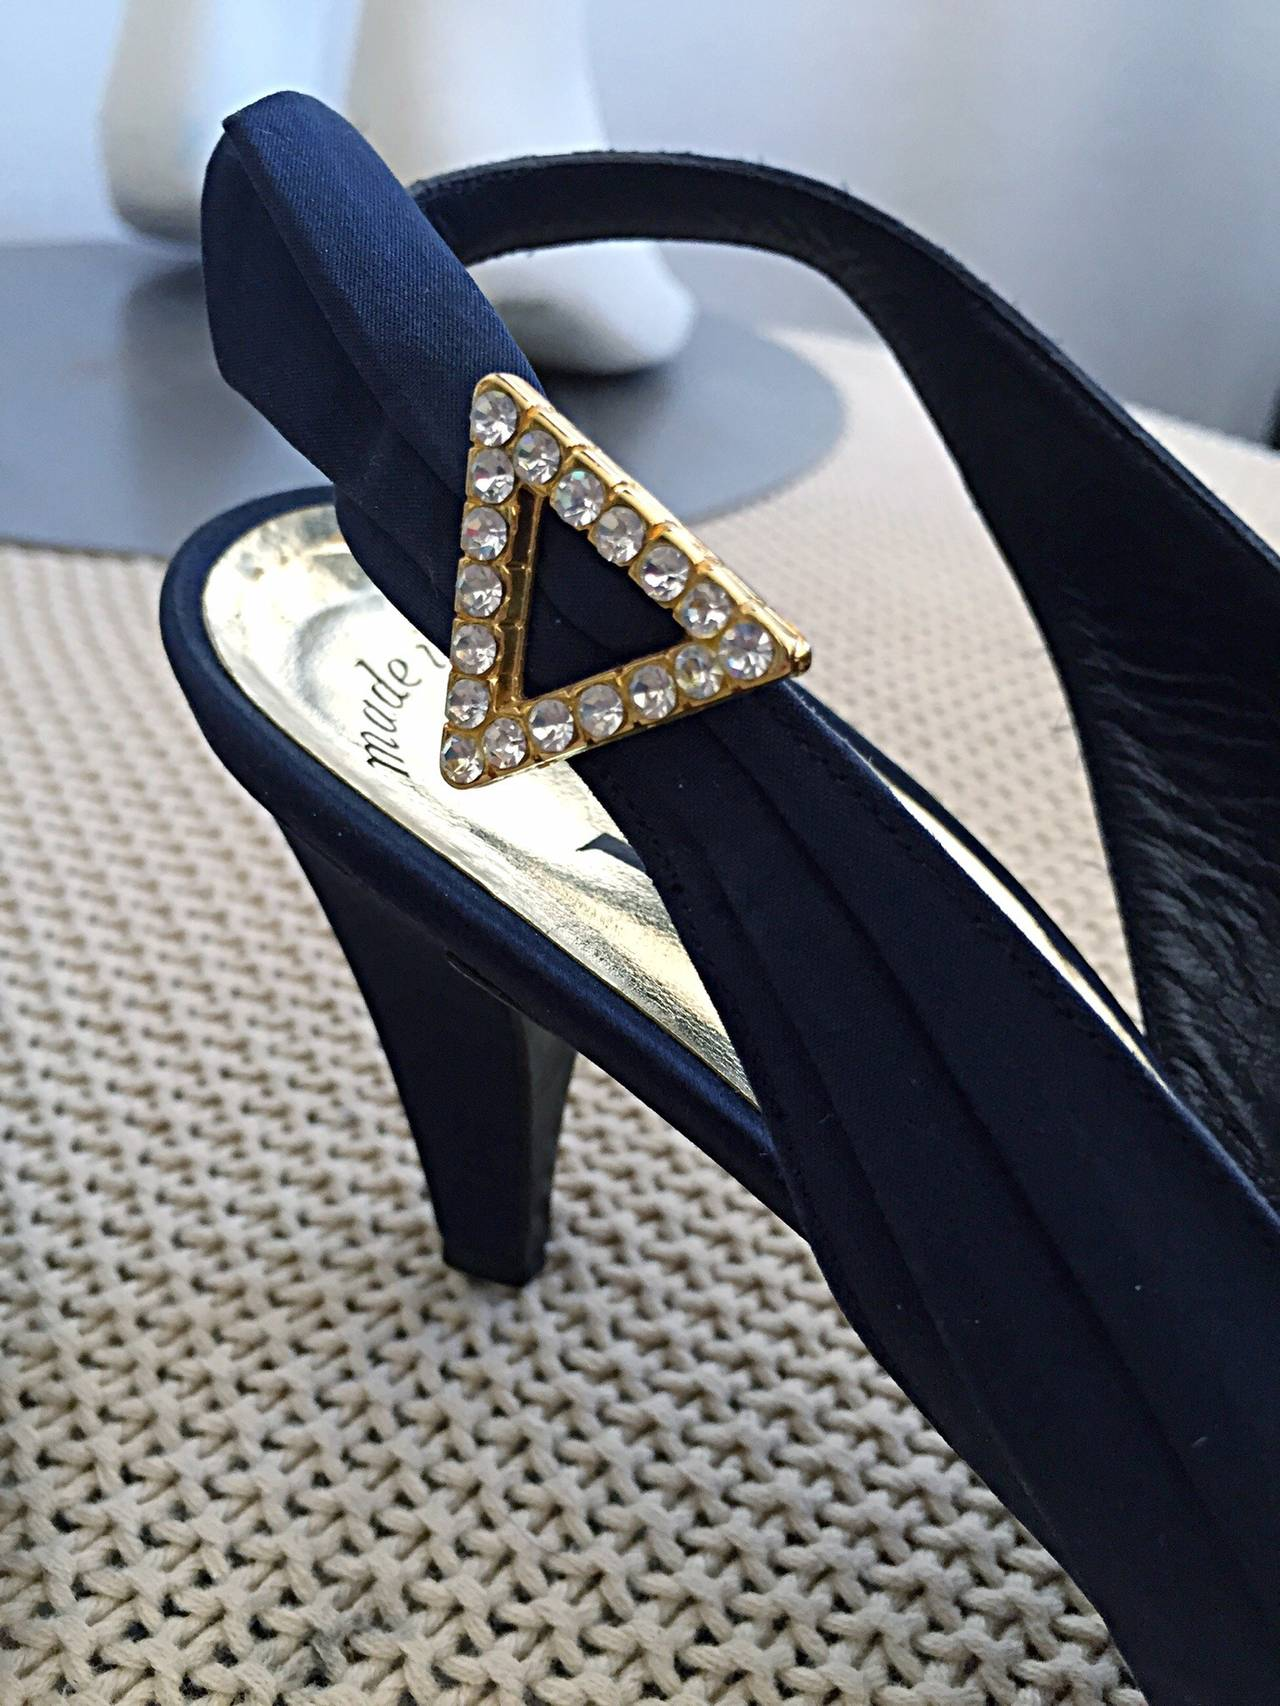 Beautiful vintage Yves Saint Laurent navy blue heels! Avant Garde detailing, with 'wings' at each outer side. Triangle rhinestone detail that accents the 'wings.' Architectural slanted vamp that is very flattering. Absolutely stunning in person! In